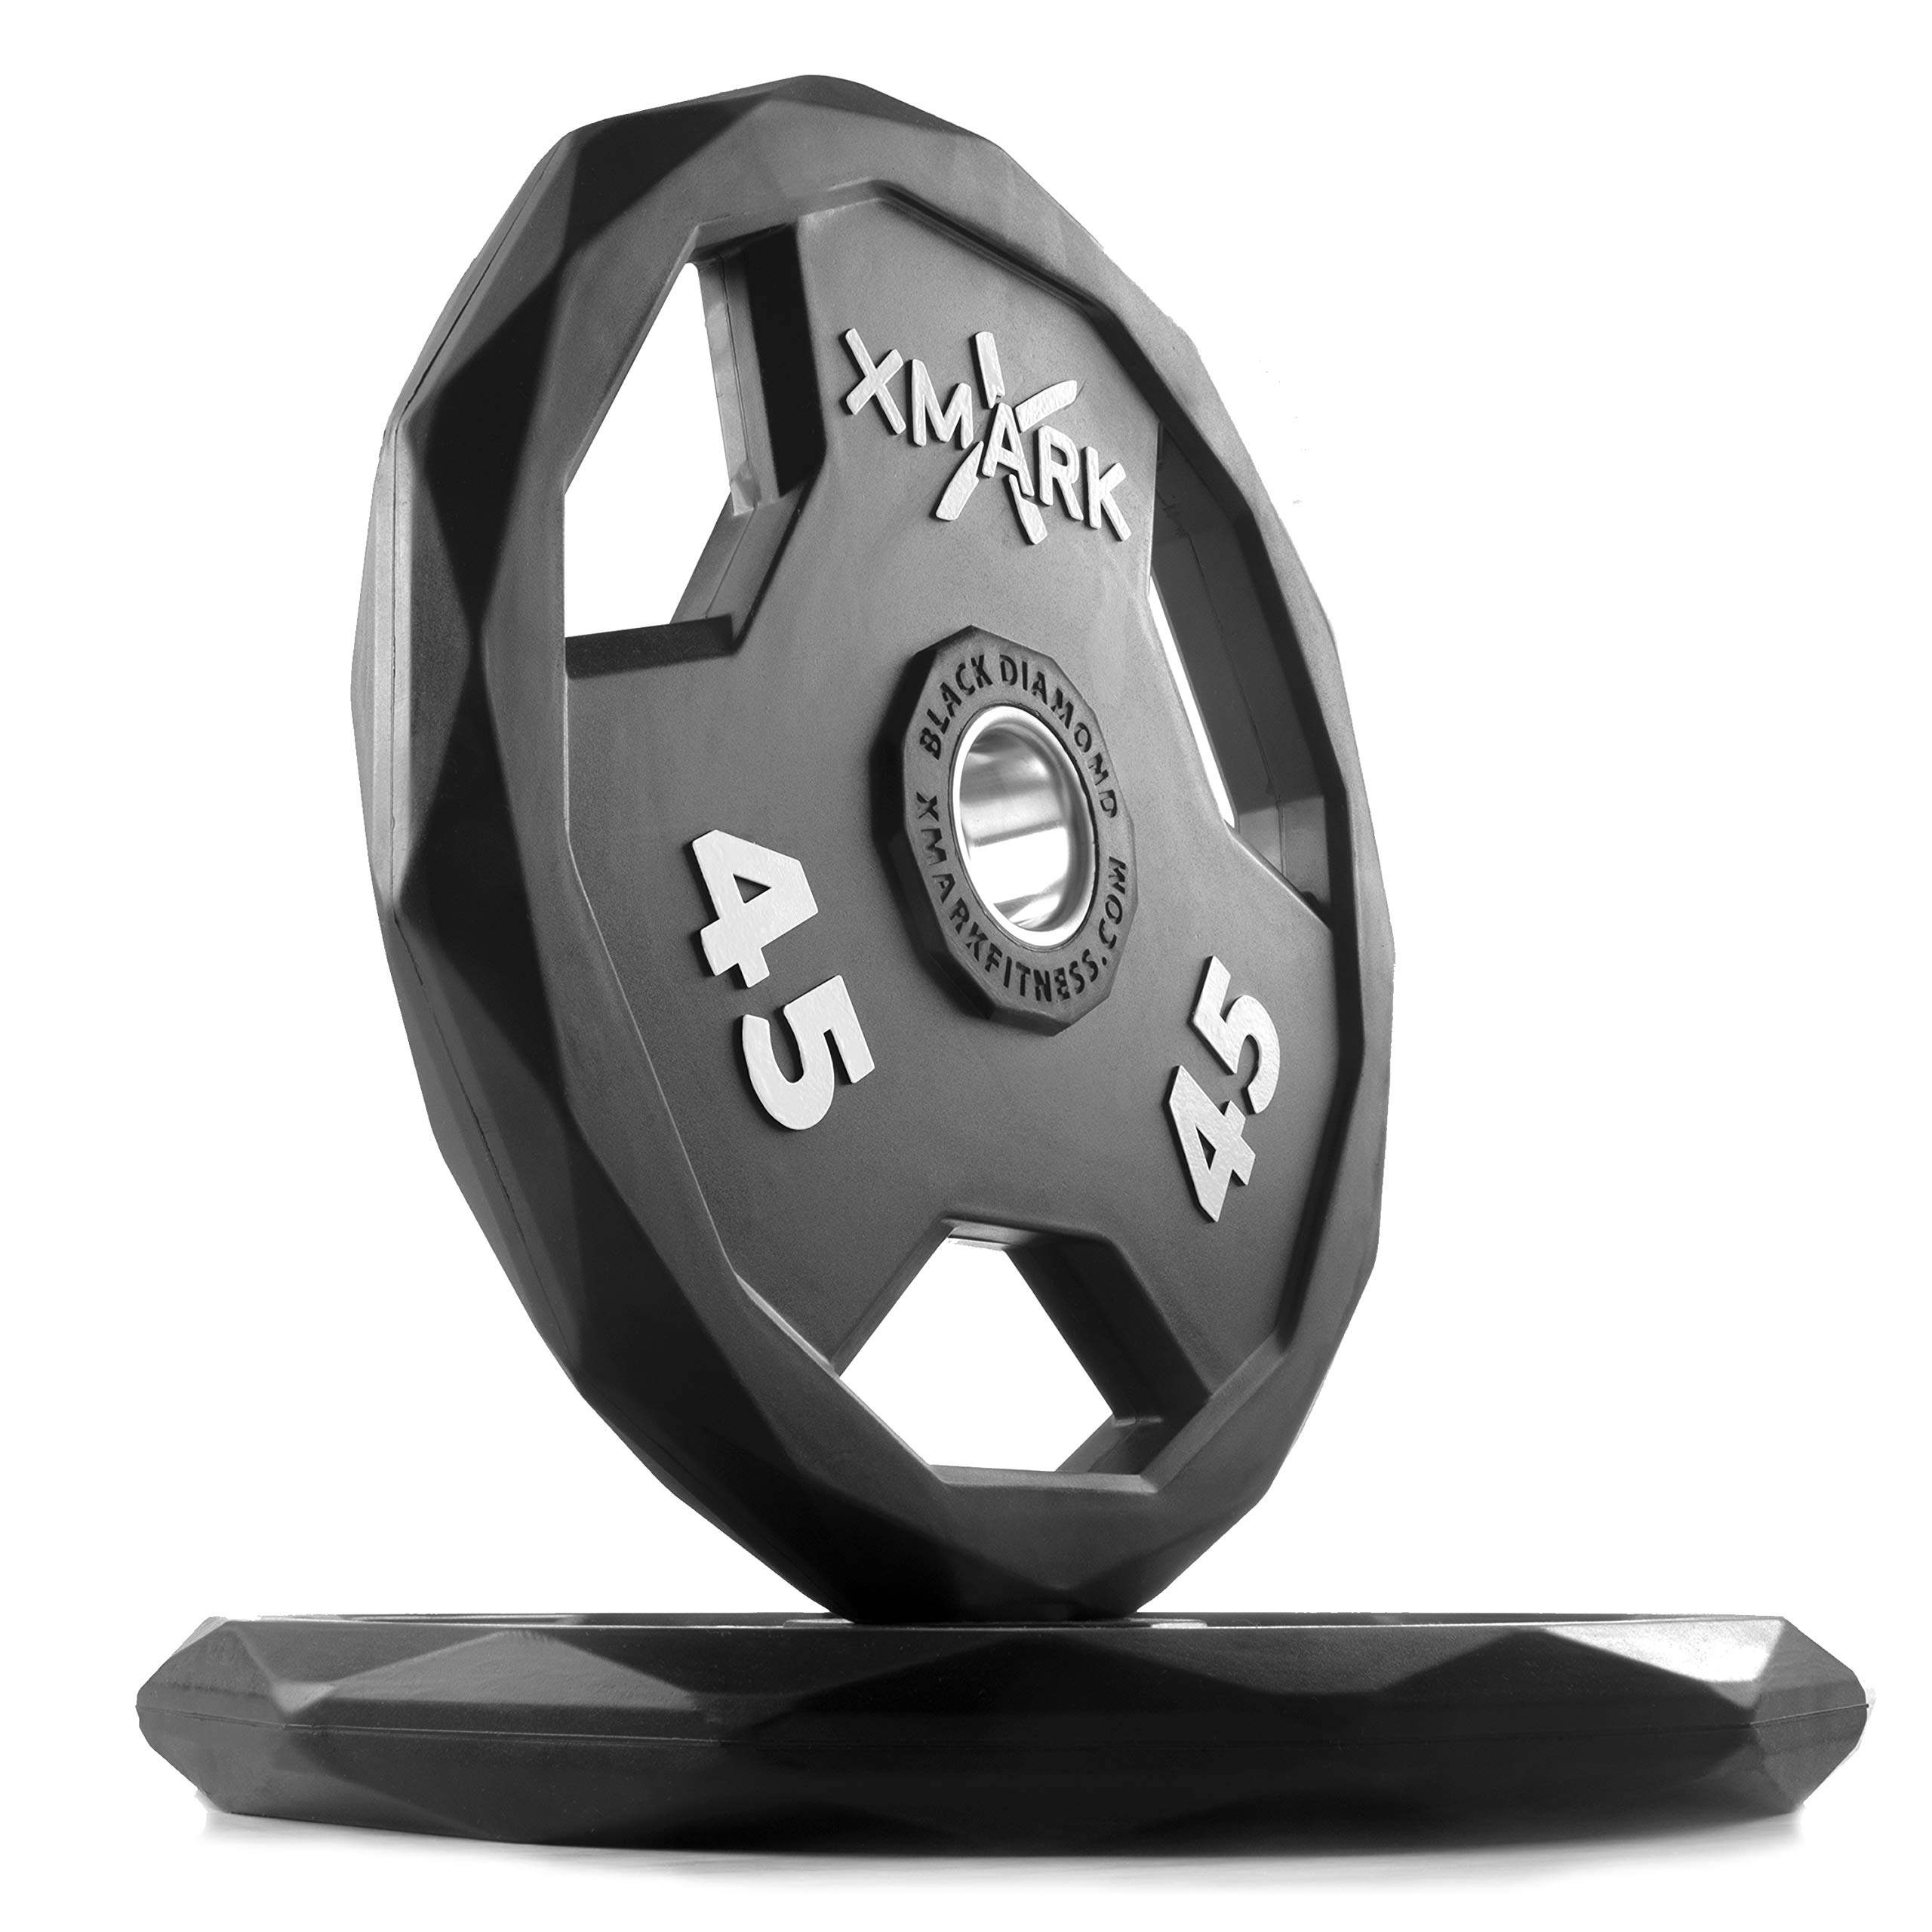 XMark Black Diamond 45 lb Olympic Weight Plates, Patented Design, One Pair